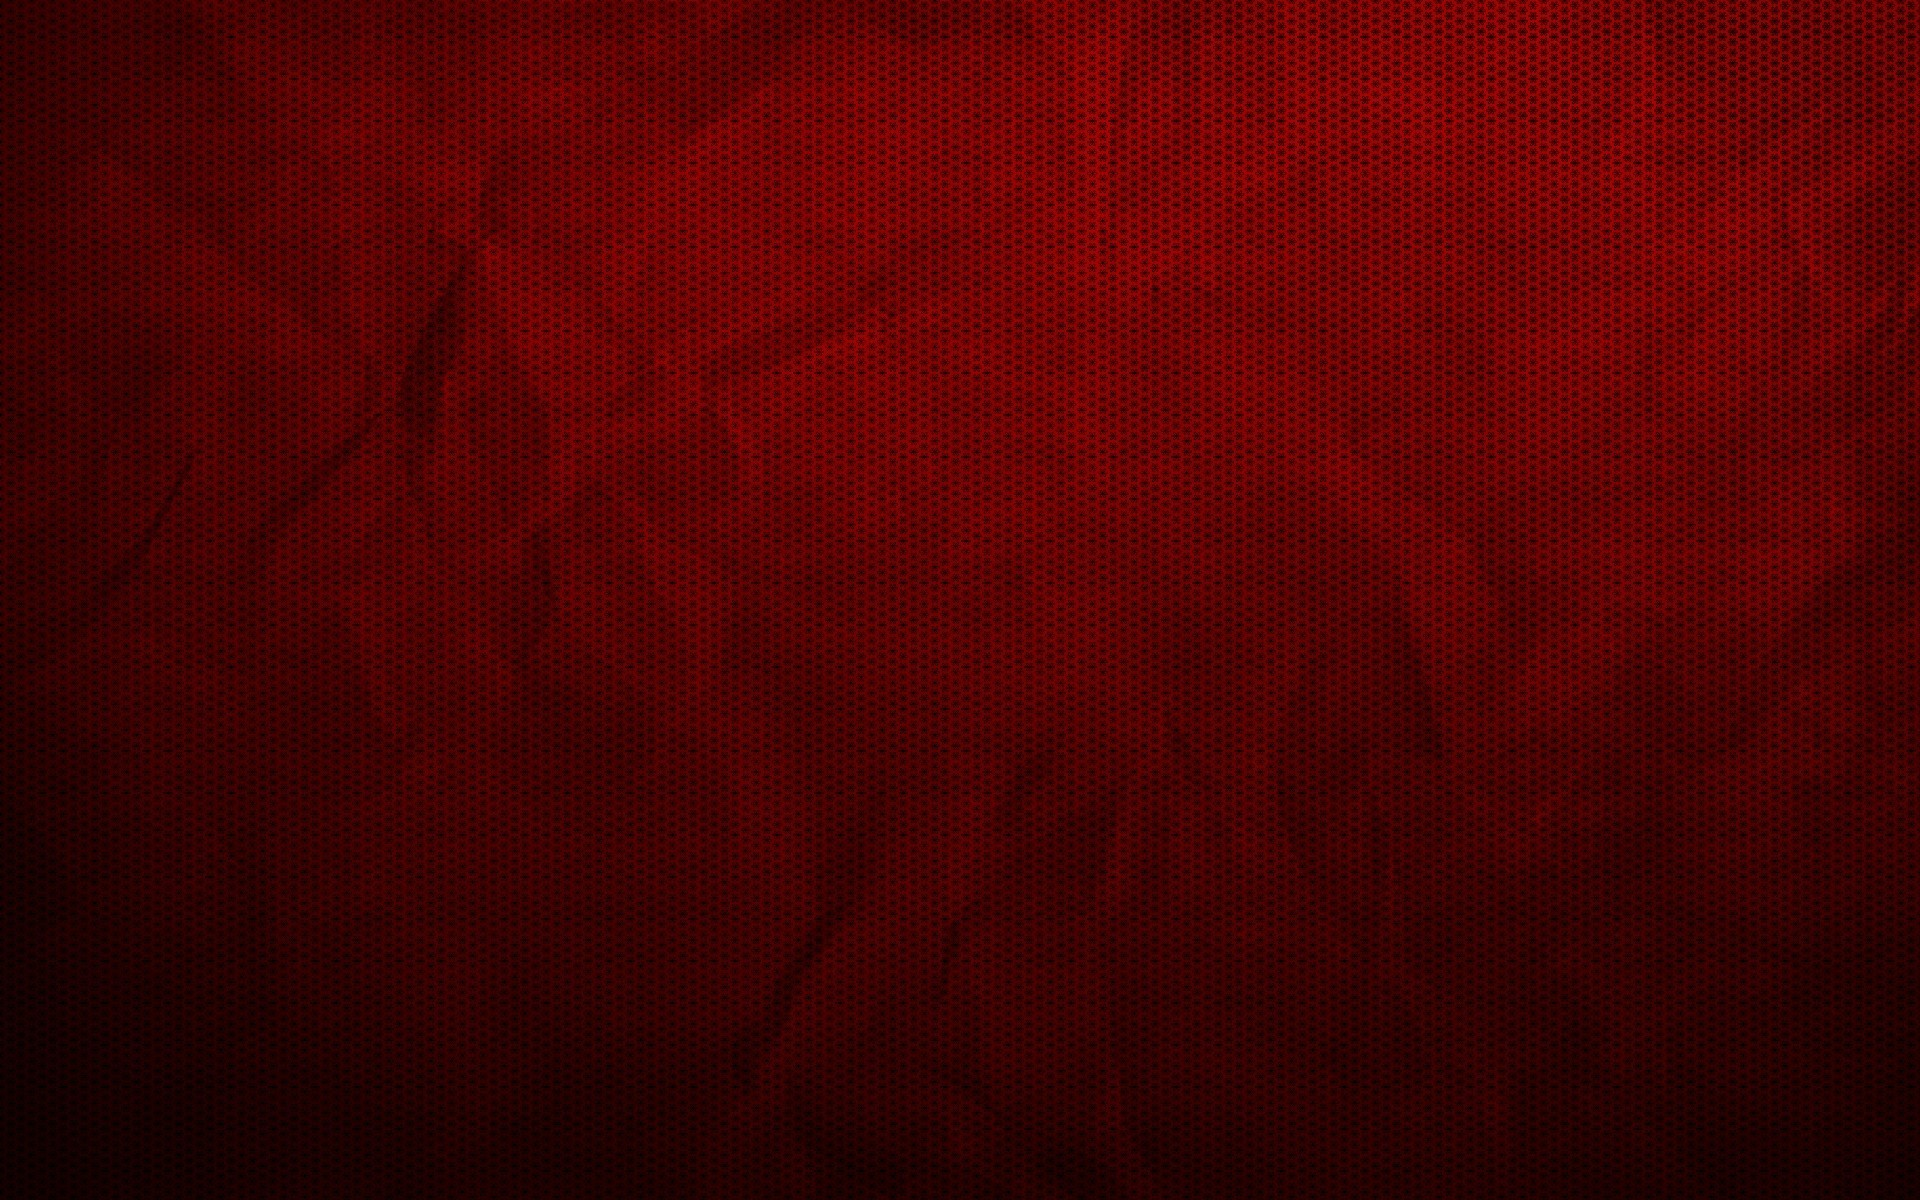 Maroon Color Background 56 Images